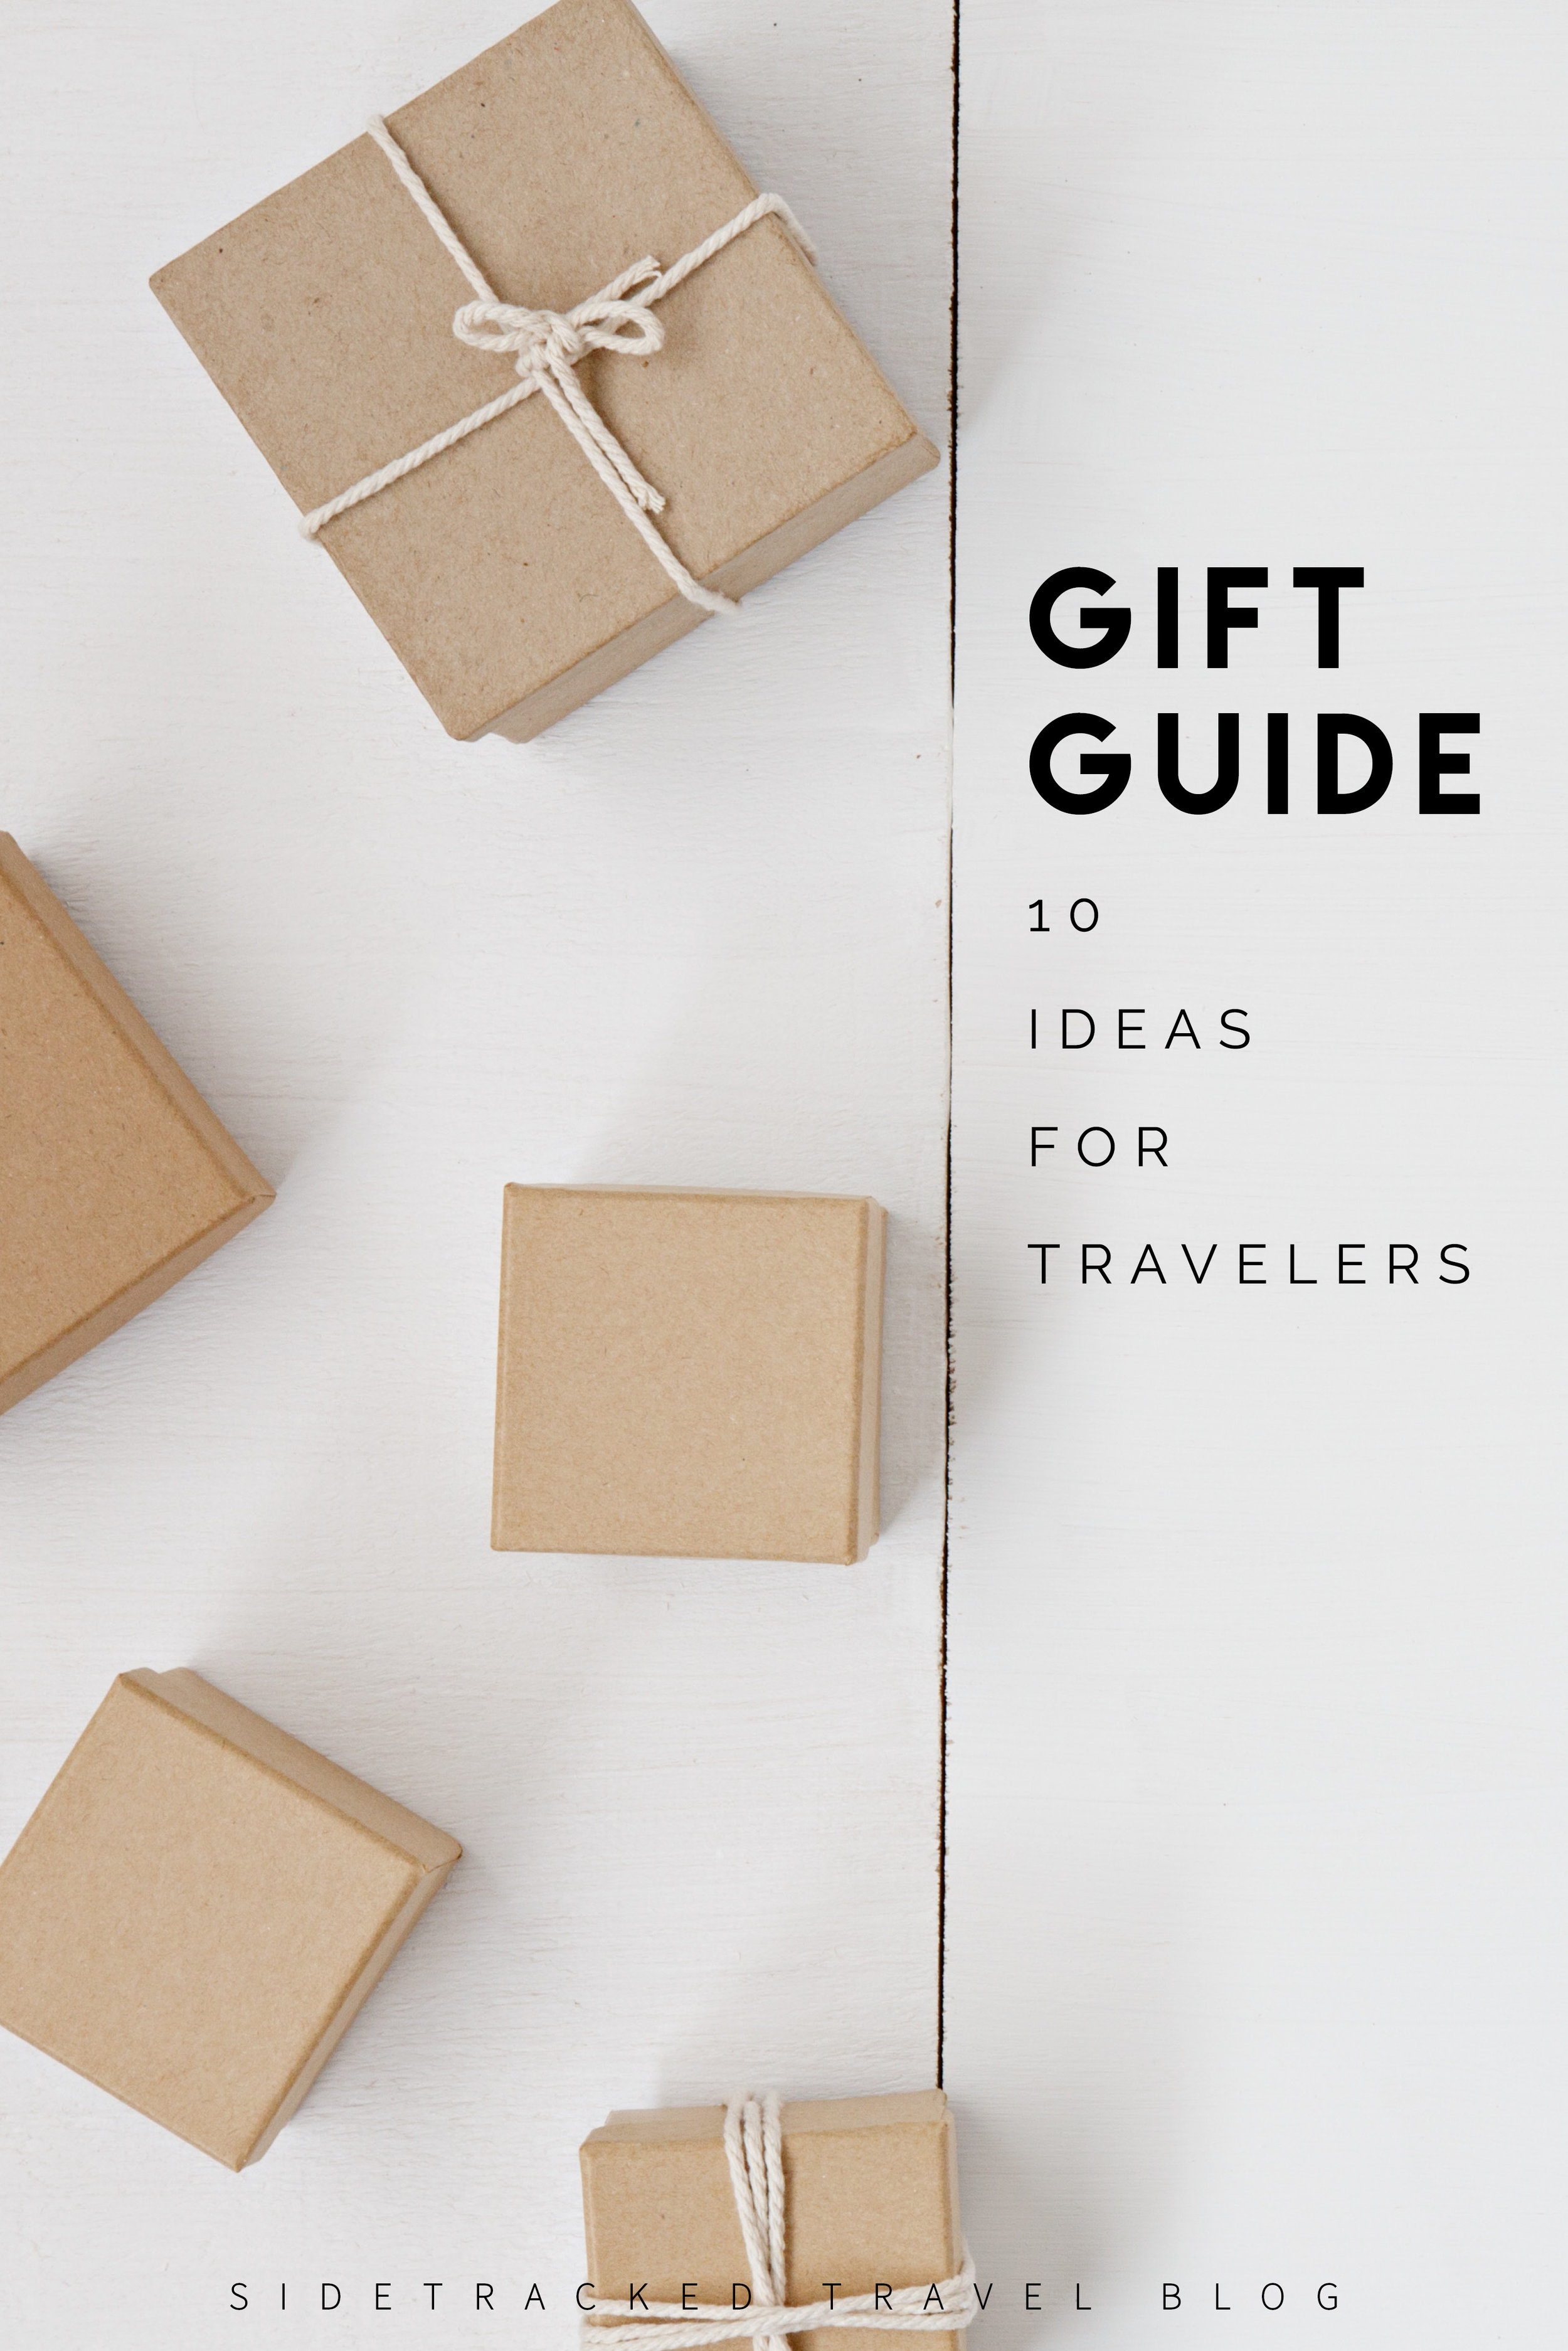 In this article you'll find a list of 10 ideas of varying budgets that would make great gifts for the traveler in your life.